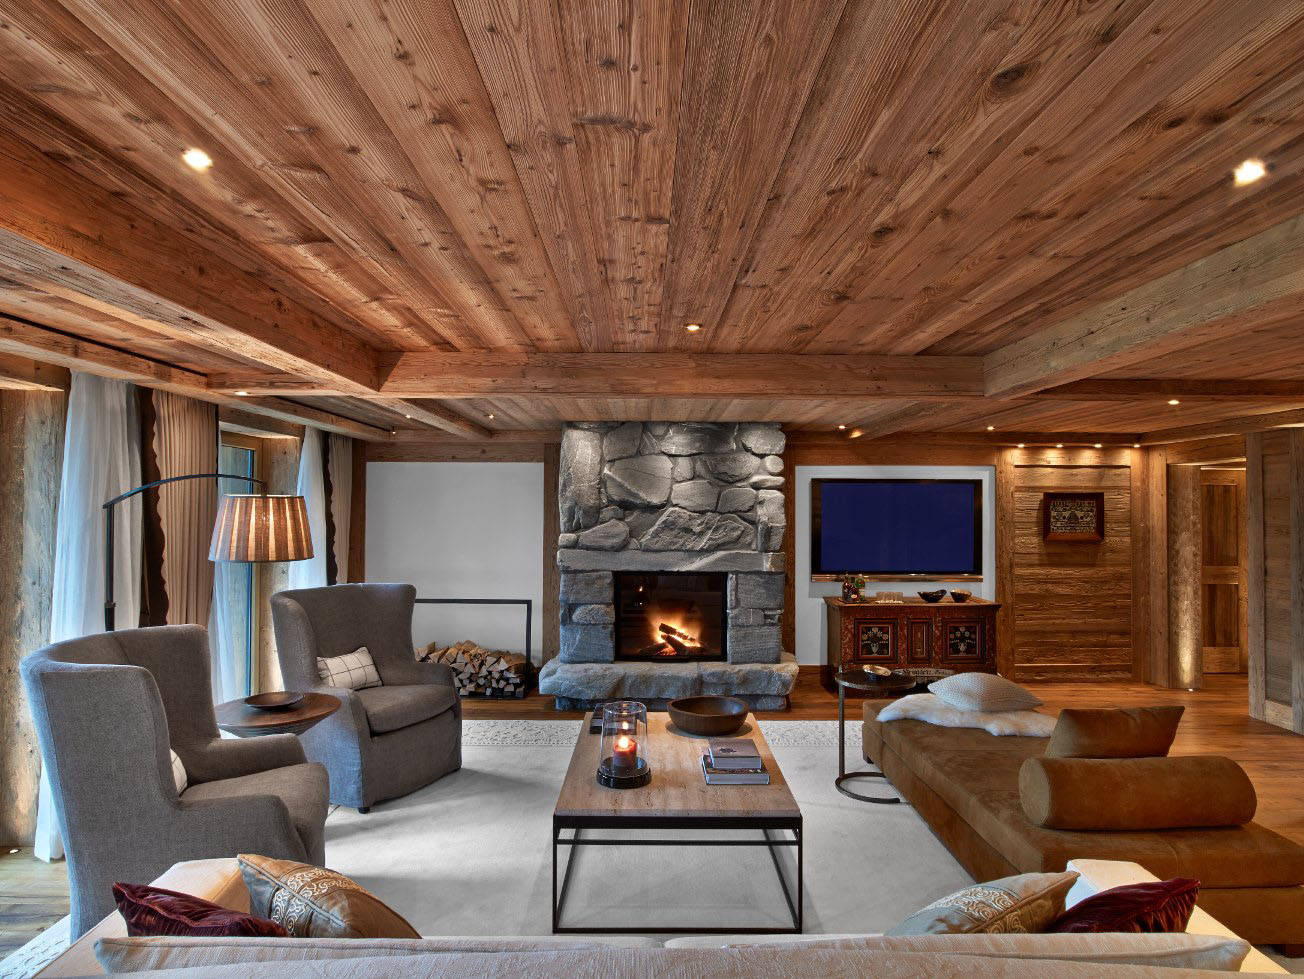 swiss alpine luxury at the alpina gstaad hotel